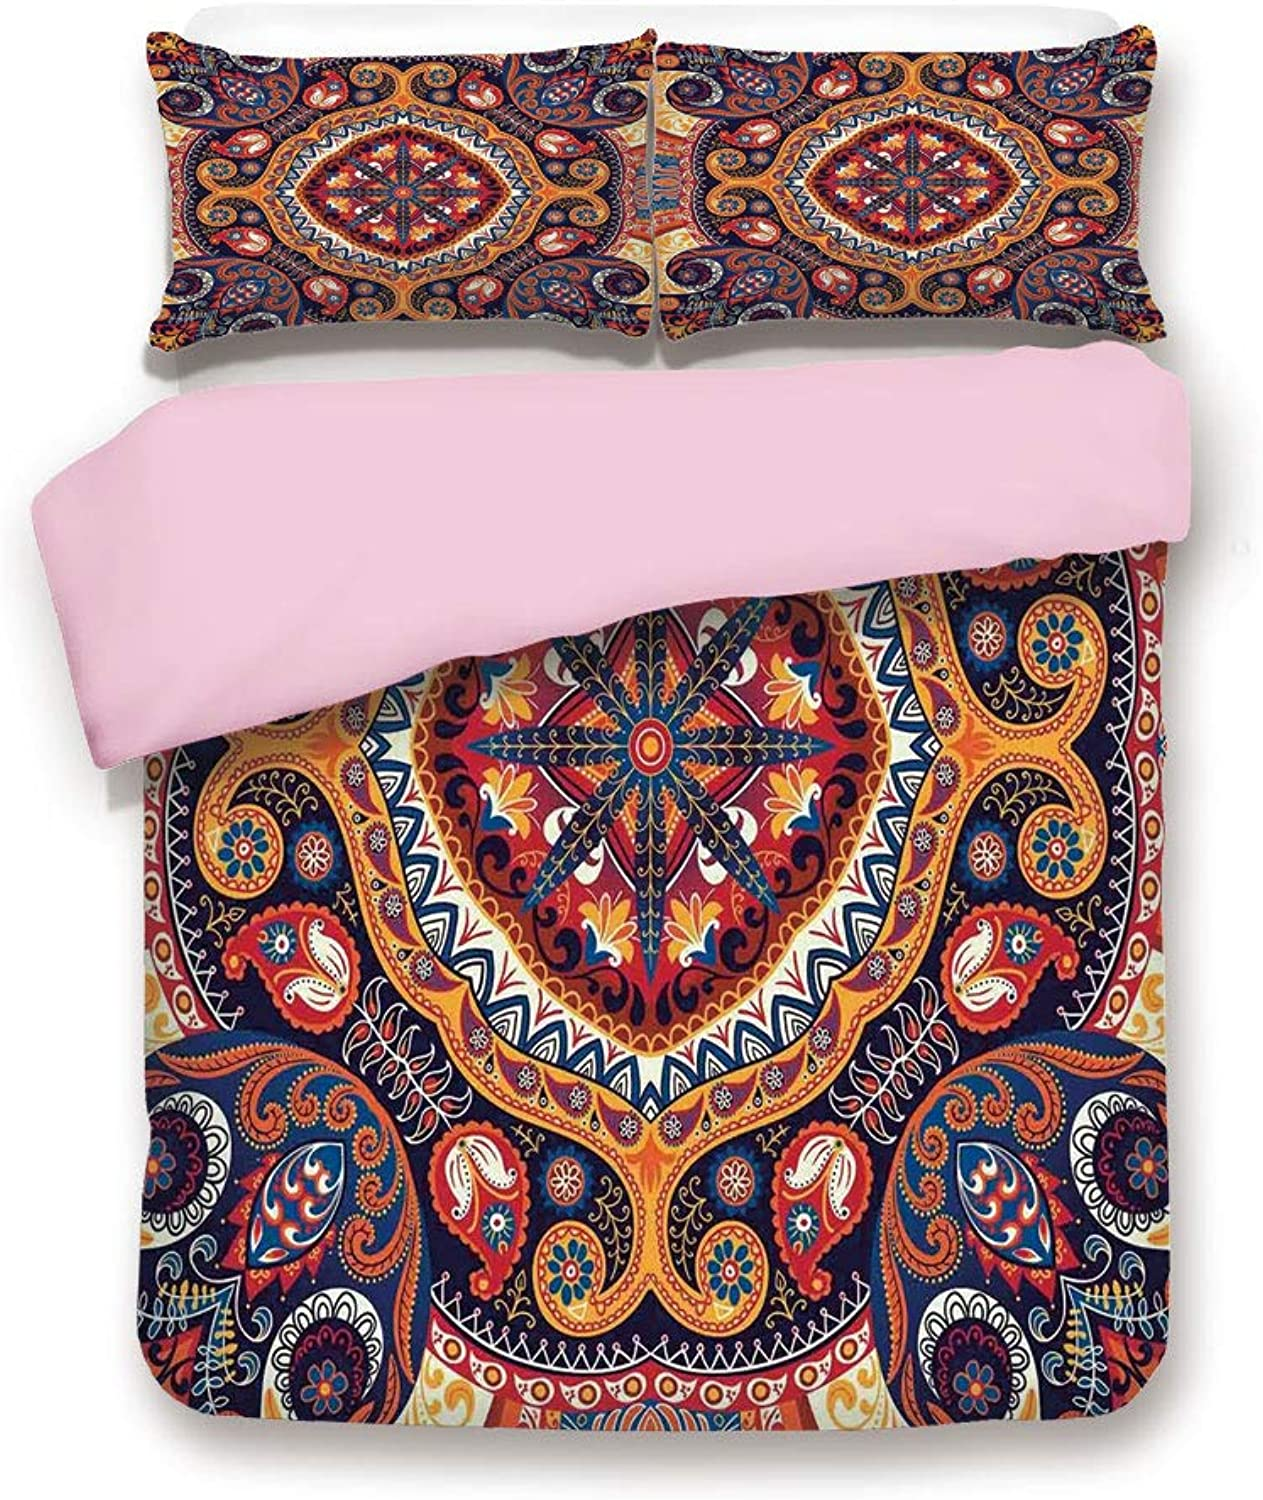 IPrint Pink Duvet Cover Set,Queen Size,Arabic Ornamental Rug Pattern Inspired Design with Flowers and Leaves,Decorative 3 Piece Bedding Set with 2 Pillow Sham,Best Gift for Girls Women,Multi colord